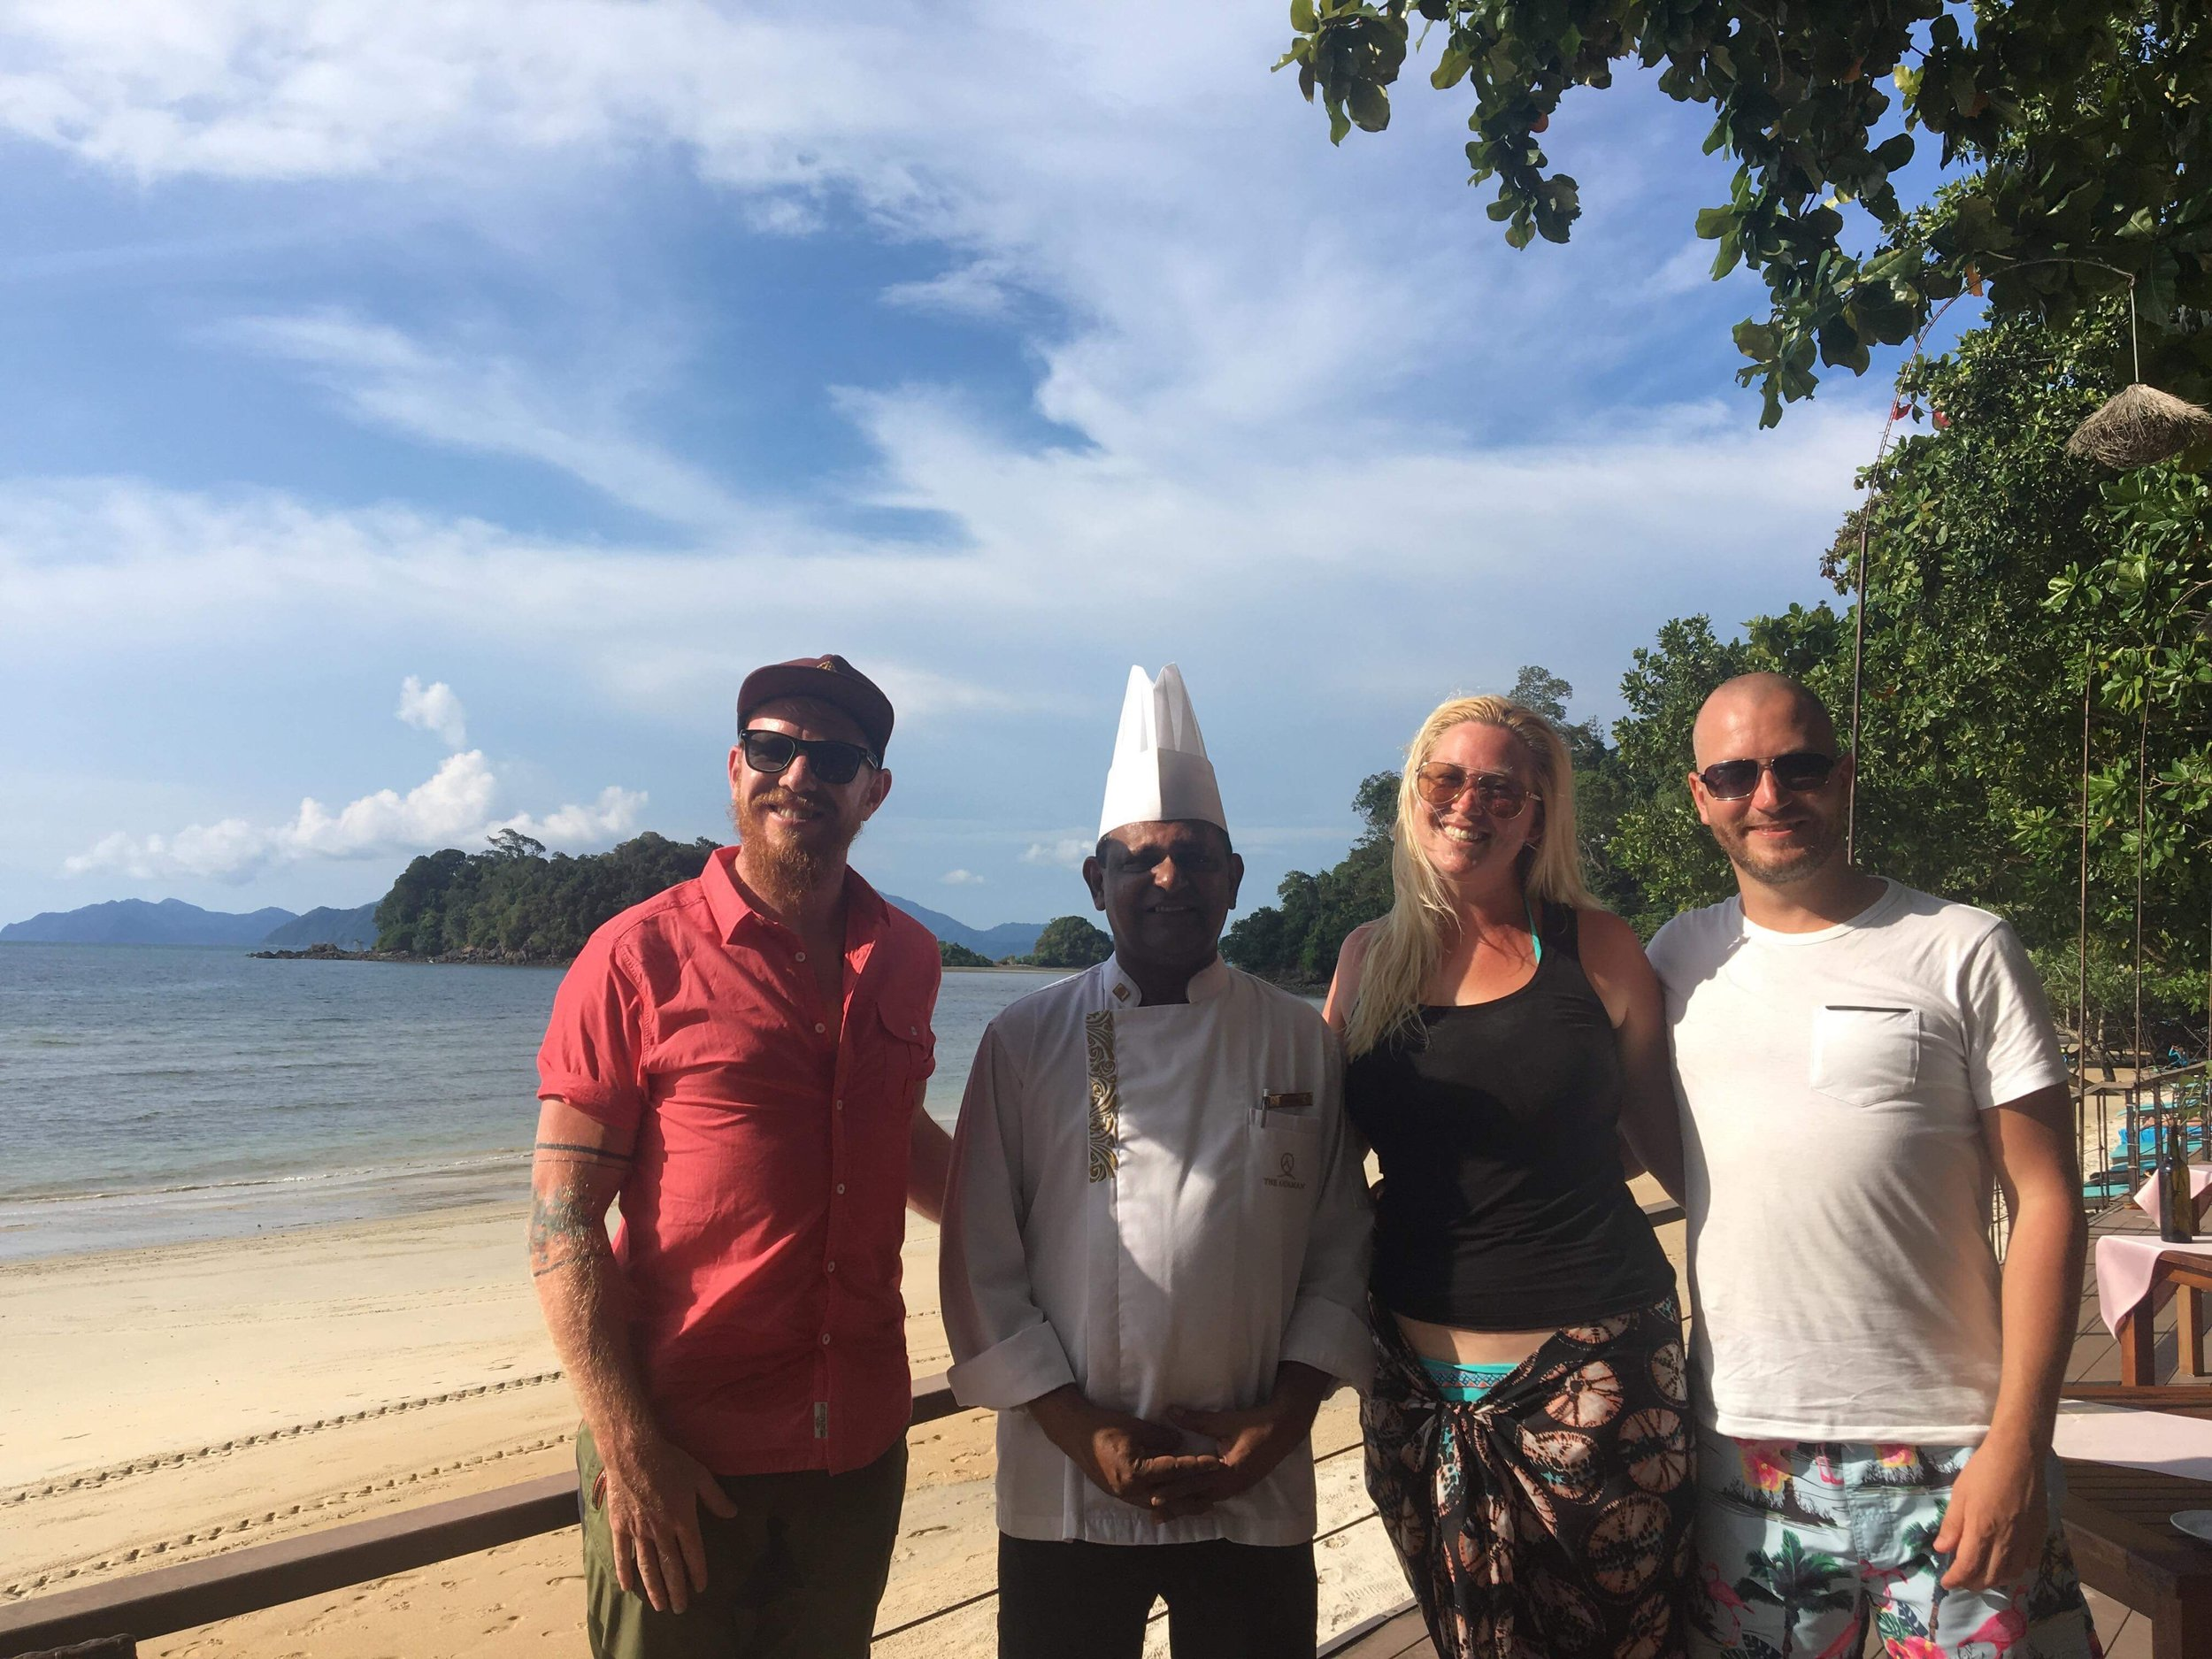 Chef Sankaran, Jess, Mark and I